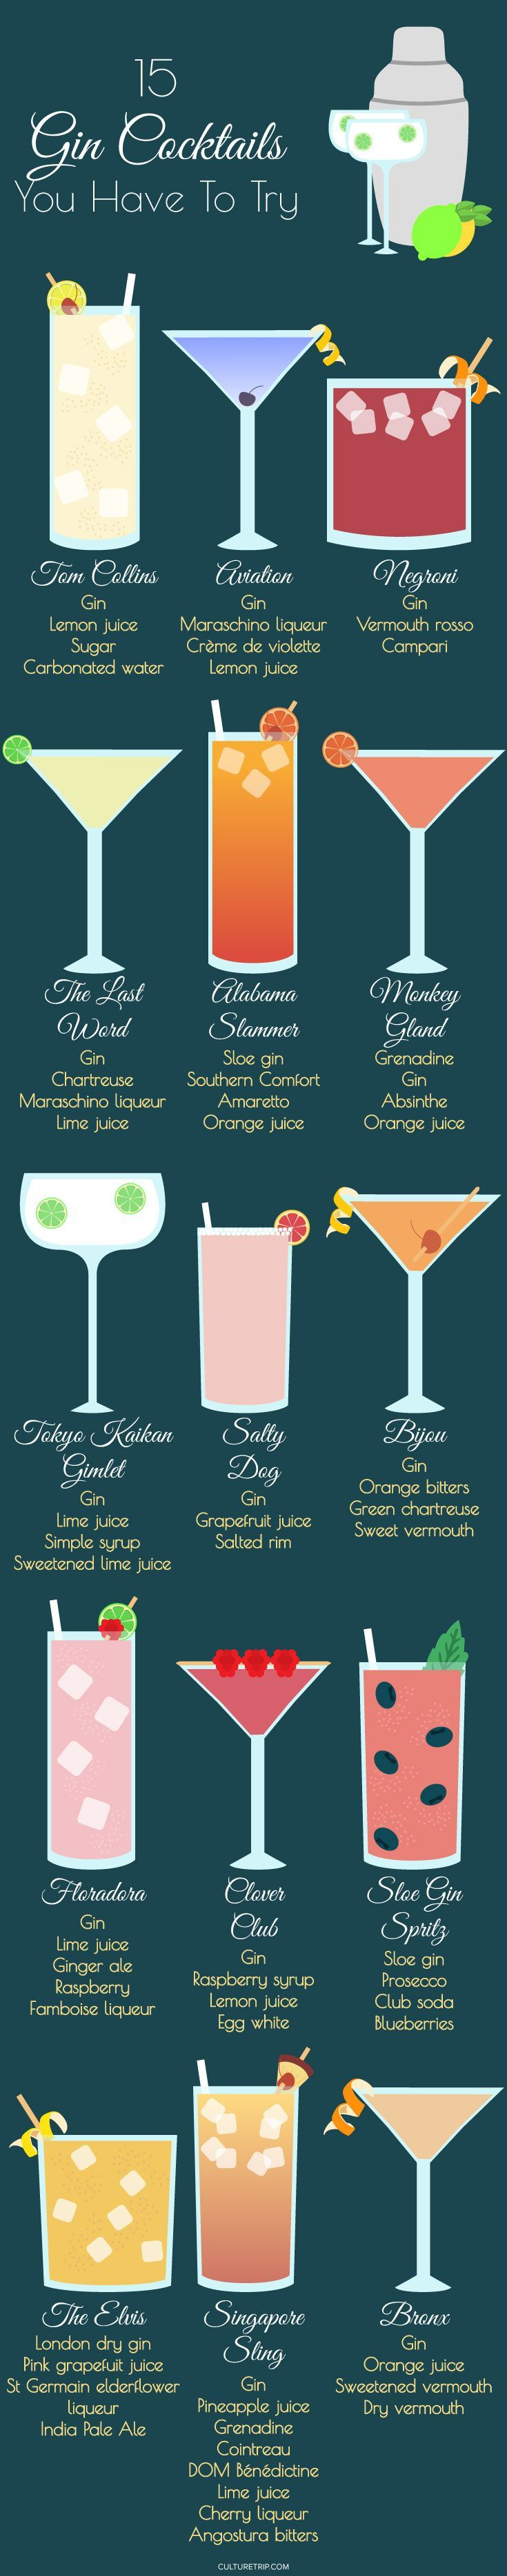 15 Incredible Cocktails to Make With Gin Infographic